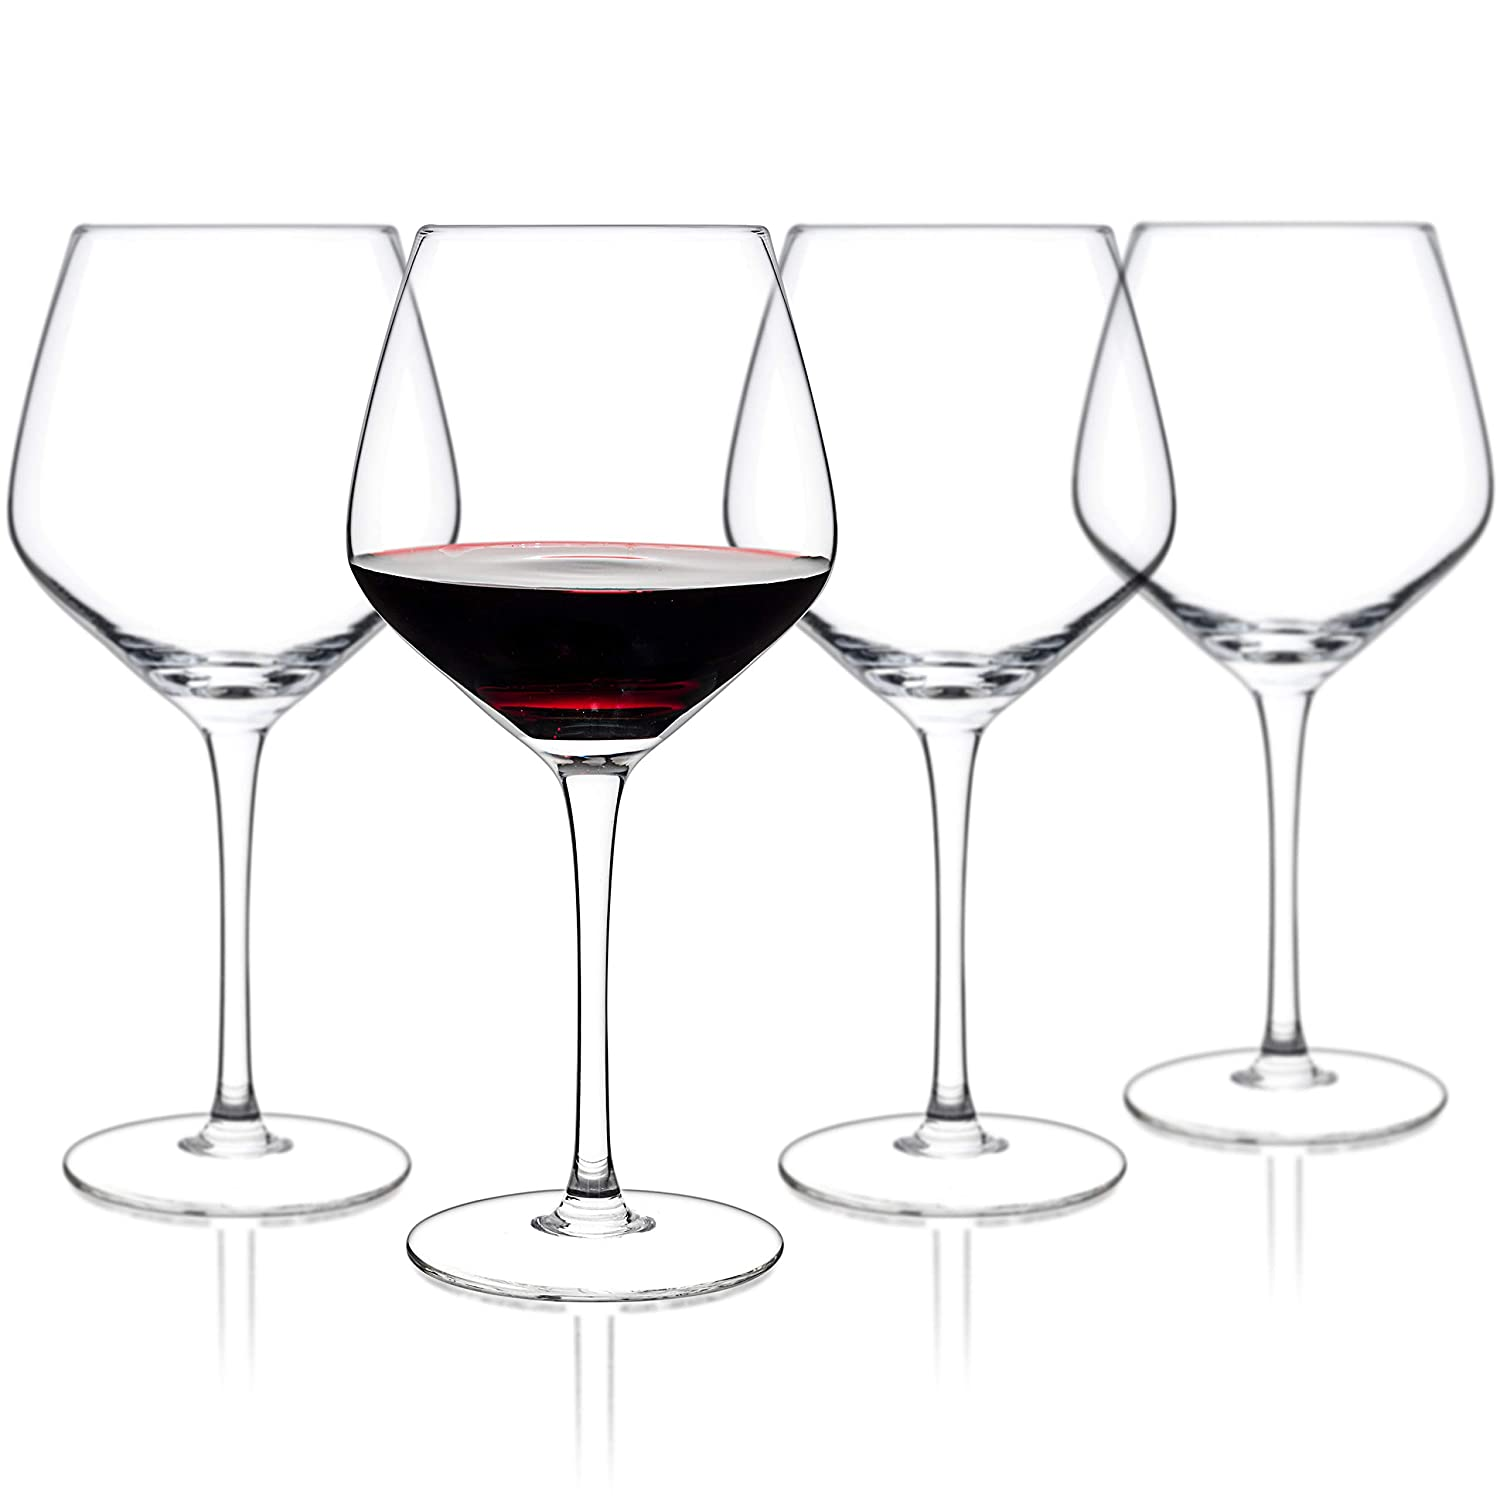 Bordeaux Burgundy Set of 2 Crystal Wine Glasses 100/% Lead Free Crystal Clear Glass 21-ounce Luxbe Professional Wine Tasting Pinot Noir Large Handcrafted Red or White Wine Glass